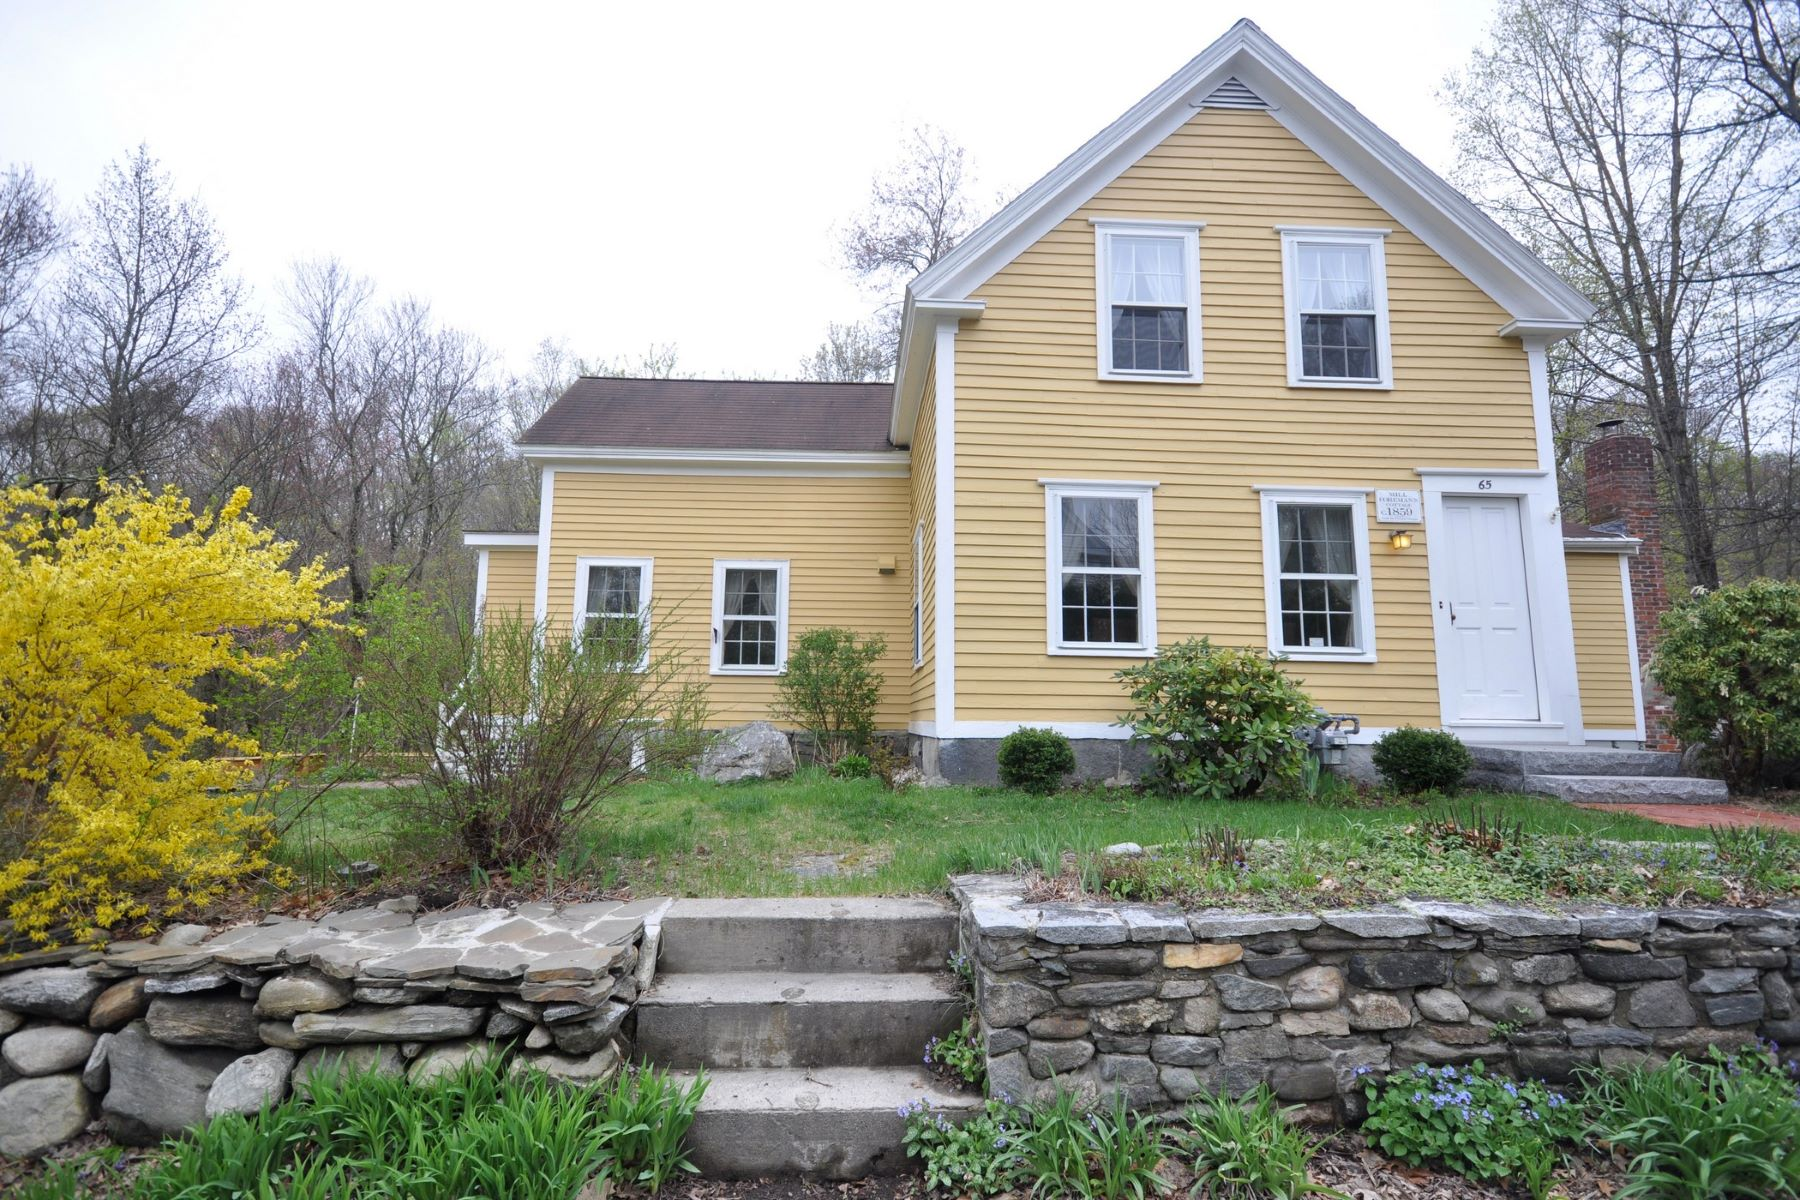 Single Family Home for Sale at Historic Antique in South Acton Historic District - Walk to Rail! 65 River Street Acton, Massachusetts, 01720 United States